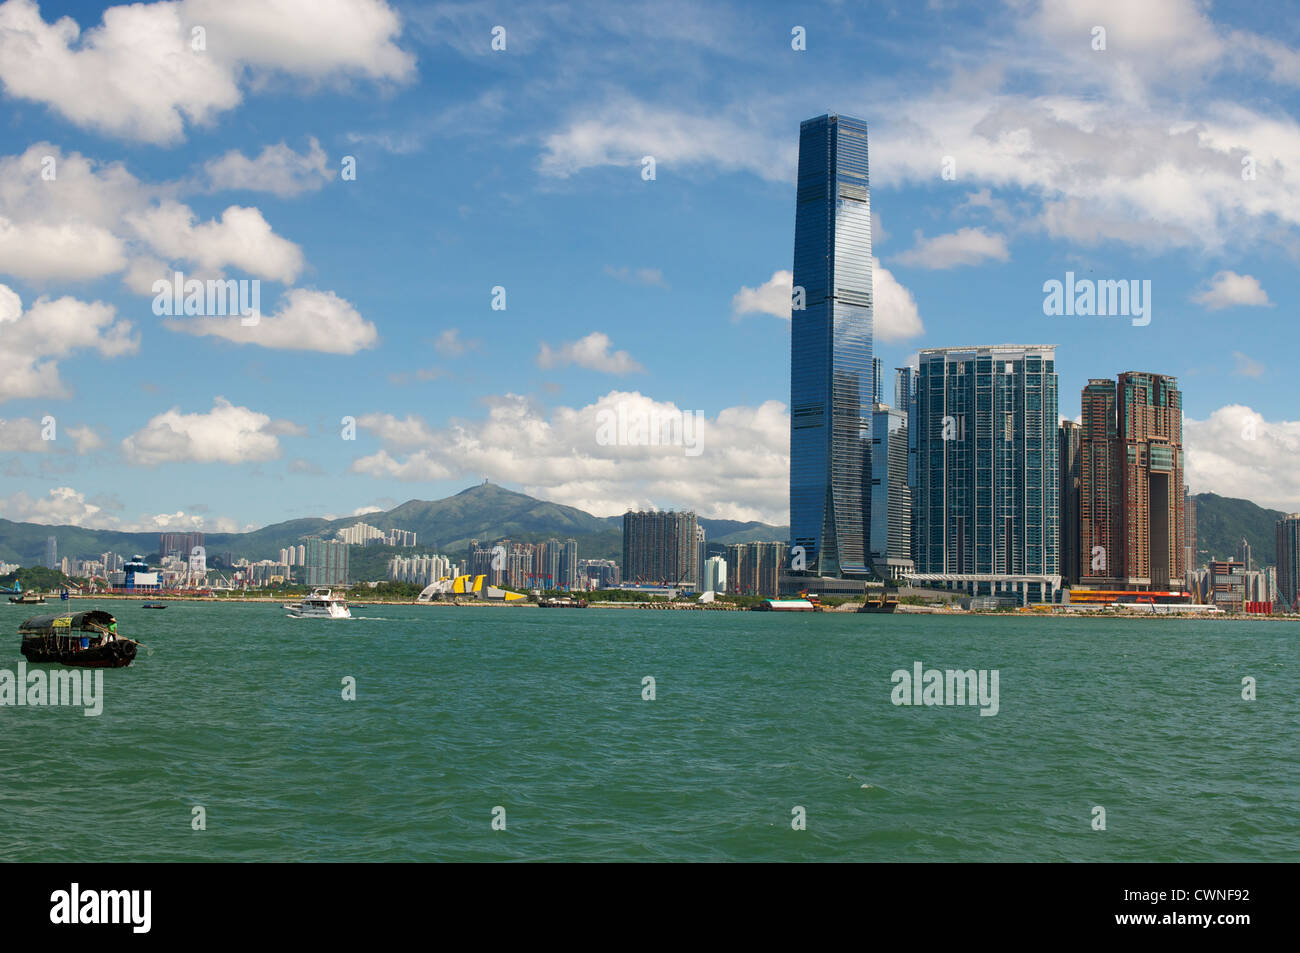 View of the harbour from Tsim Sha Tsui in Hong Kong - Stock Image